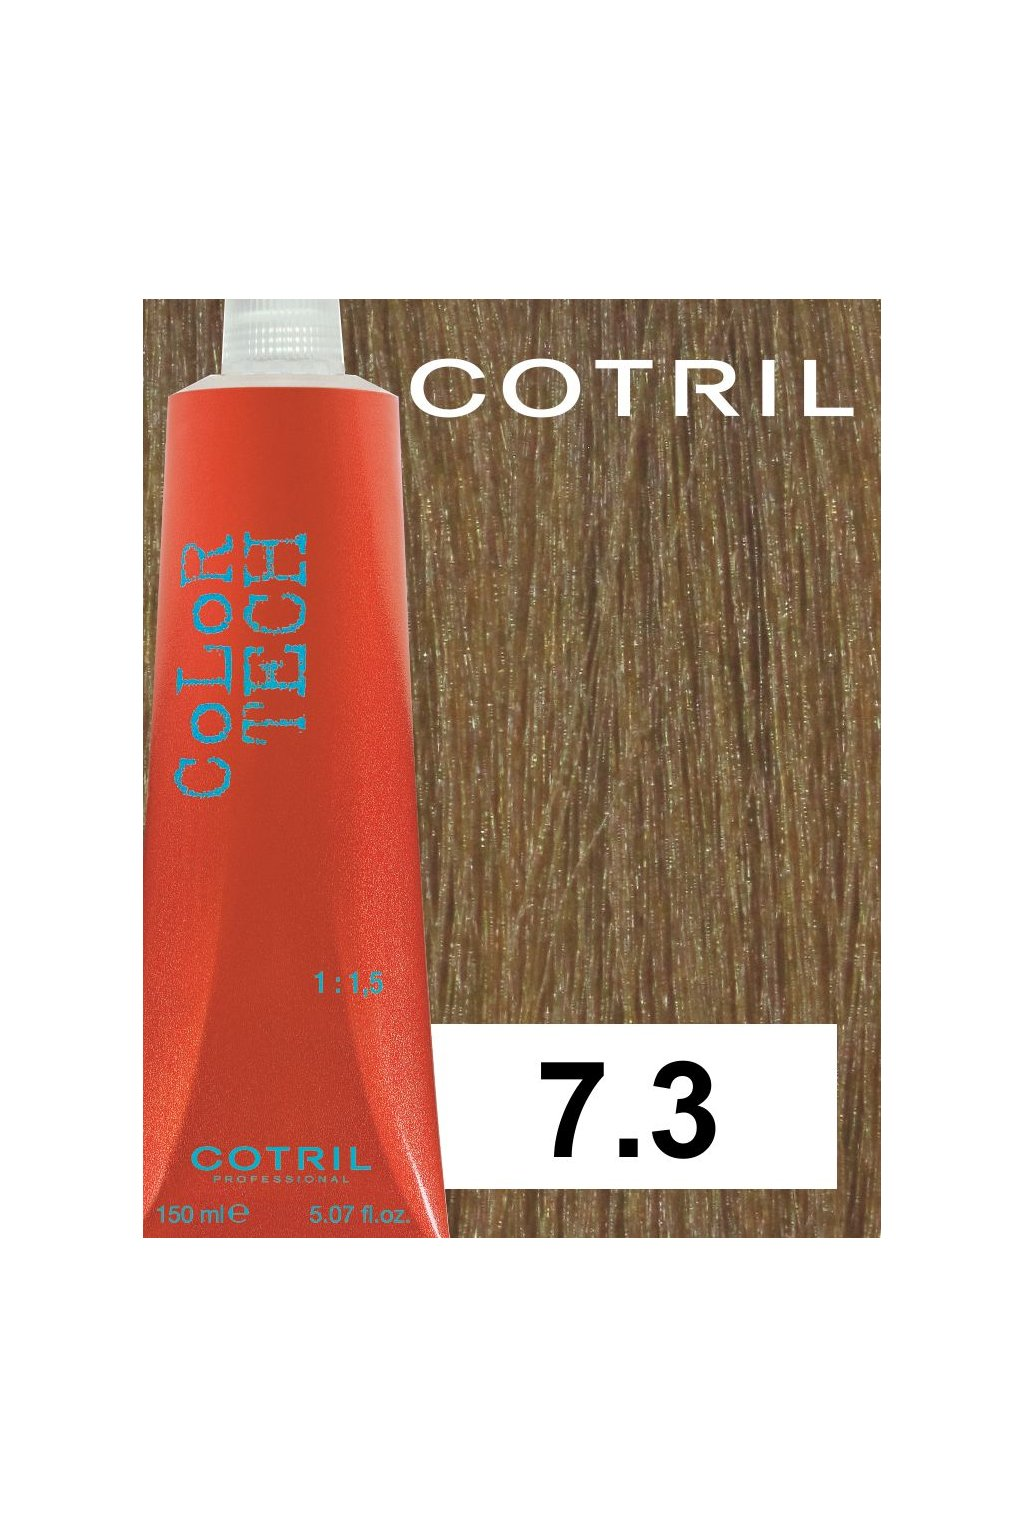 7 3 ct cotril